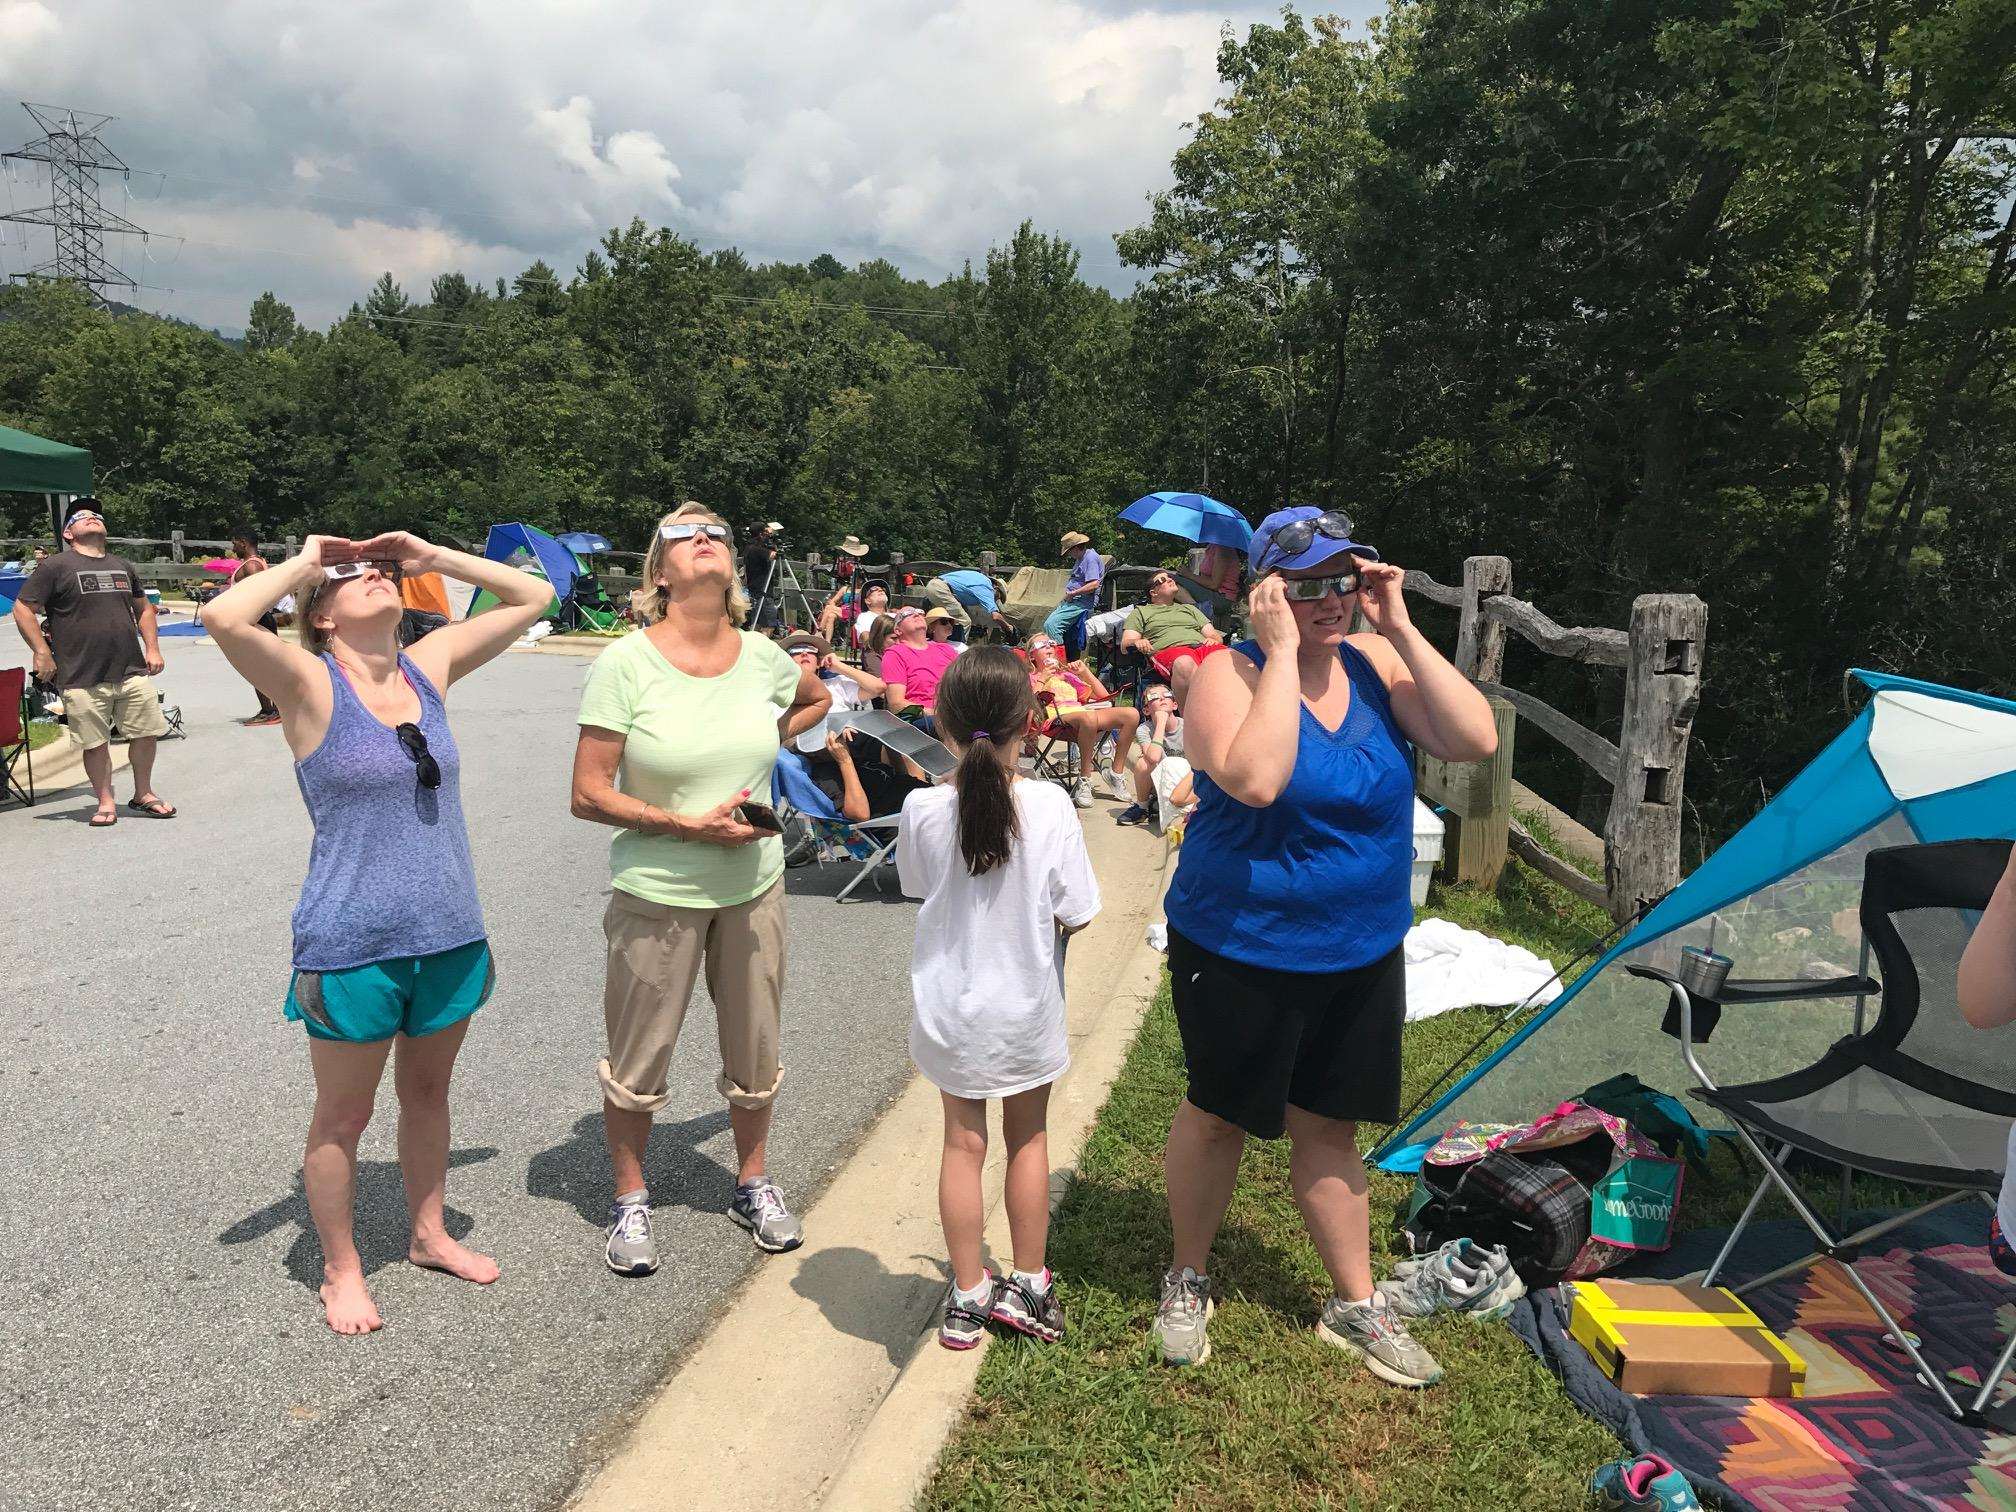 About 5,000 people packed Gorges State Park in Transylvania County to see the total solar eclipse, but the weather let them down. (Photo credit: WLOS staff)